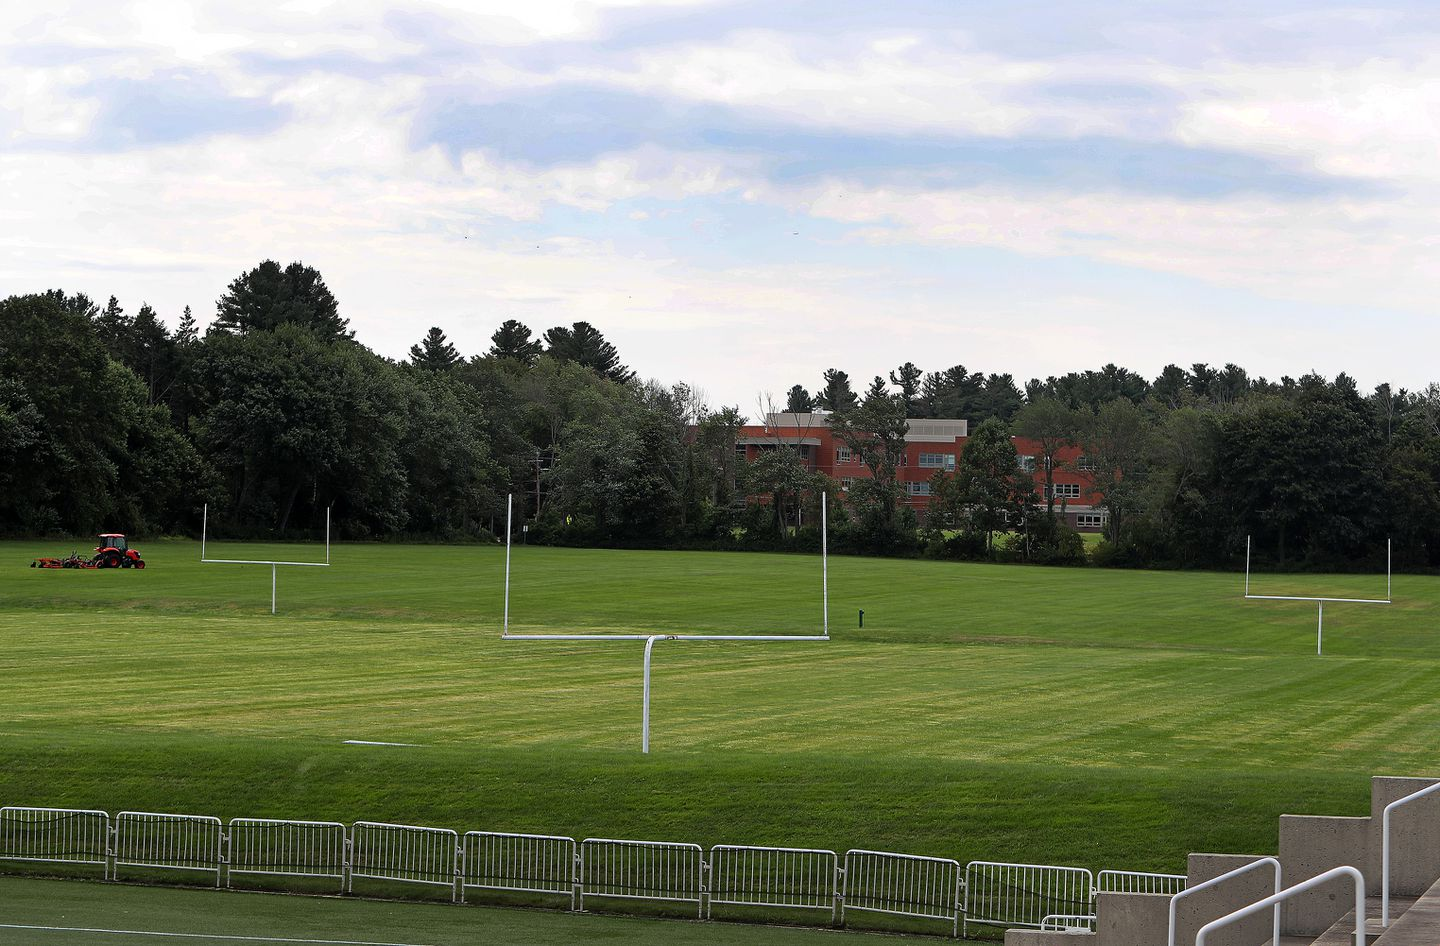 """The area next to the football field at Phillips Academy is known to students as """"Siberia."""""""